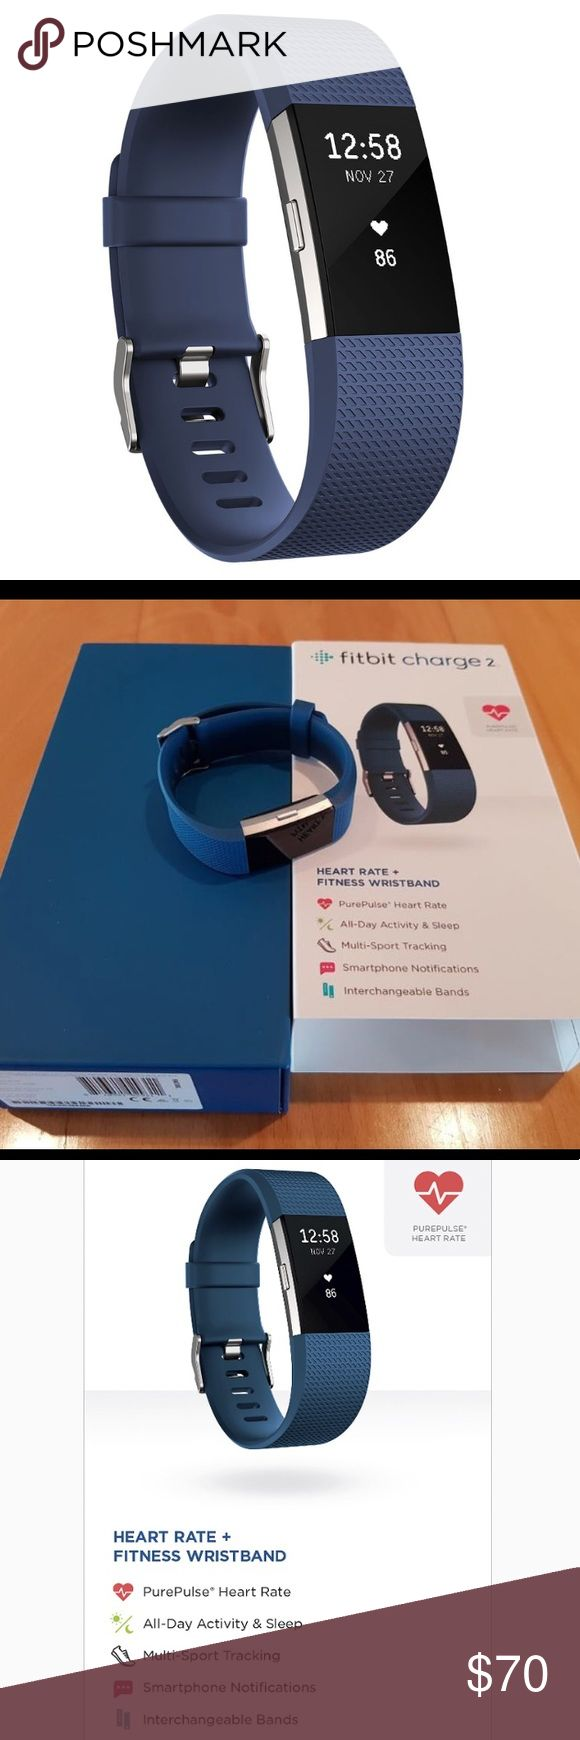 NIB Fitbit Charge 2 What's Included Fitbit Charge 2 tracker Charge 2 classic wristband Charging cable  Display: OLED Heart Rate: Like all heart rate tracking technologies, accuracy is affected by physiology, location of device, and different movements.   Battery life up to 5 days  Battery type: Lithium-polymer Charge time: One to two hours Radio transceiver: Bluetooth 4.0 Memory: Saves 7 days of detailed motion data – minute by minute Saves daily totals for past 30 days Fitbit Jewelry